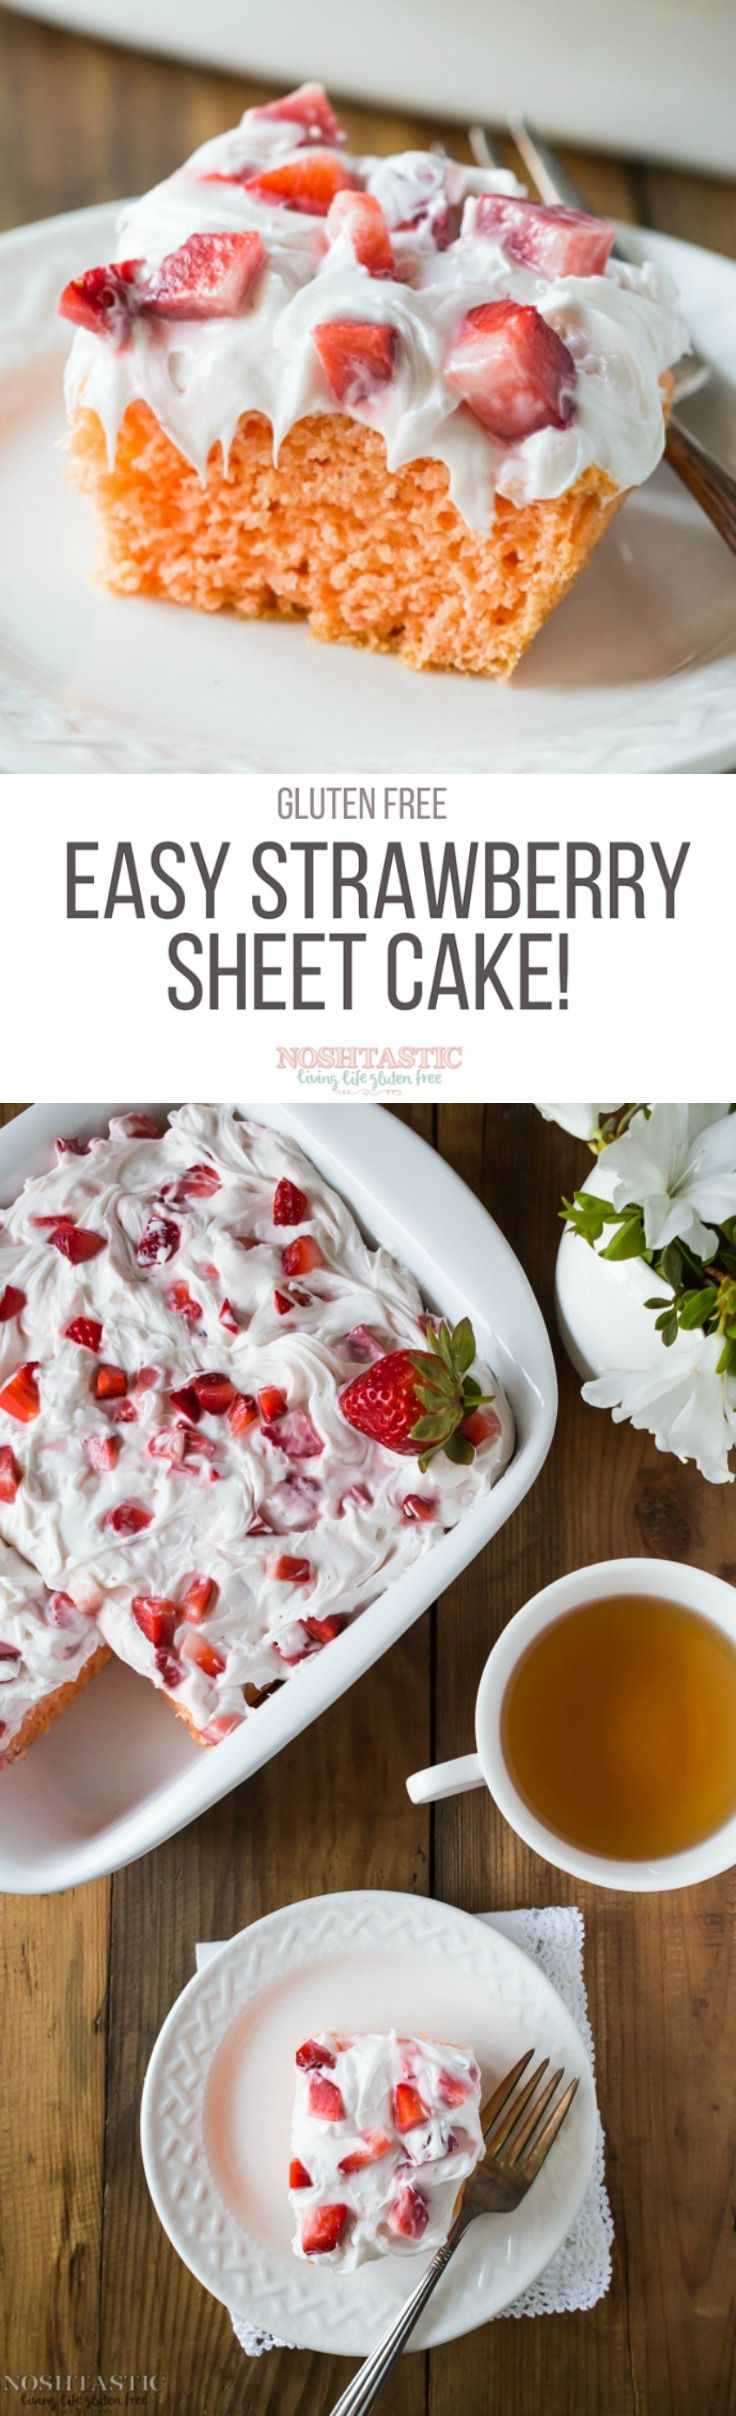 You can whip up this beautiful Gluten Free Strawberry Cake in an instant with a box of gluten free Yellow cake mix and ready made marshmallow frosting, so easy!!  | Sponsored by The  J.M. Smucker Company  #mixupamoment